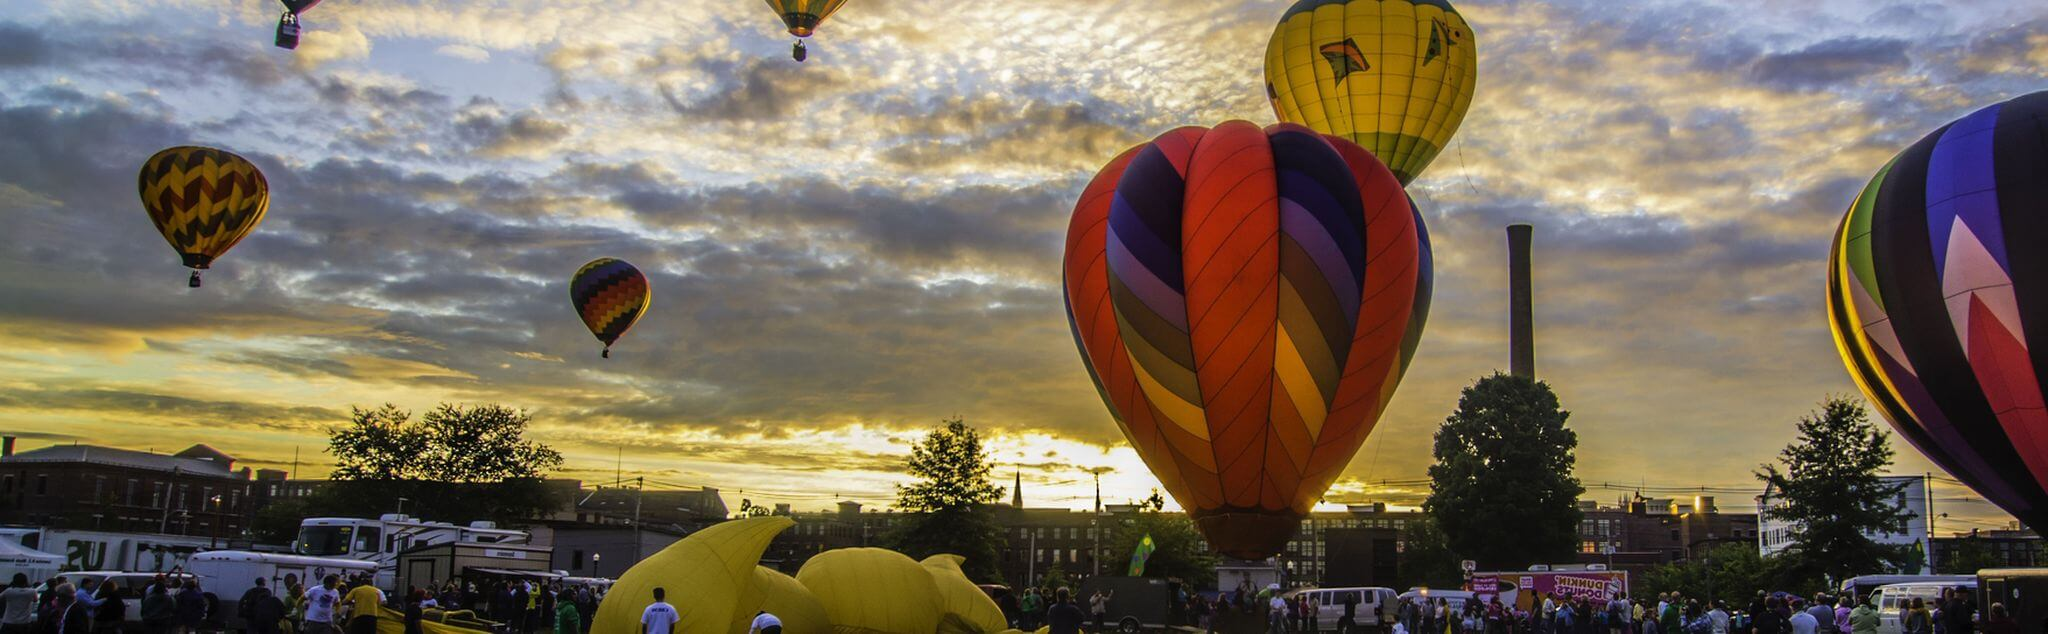 Ballooning in Ciudad Real (City)